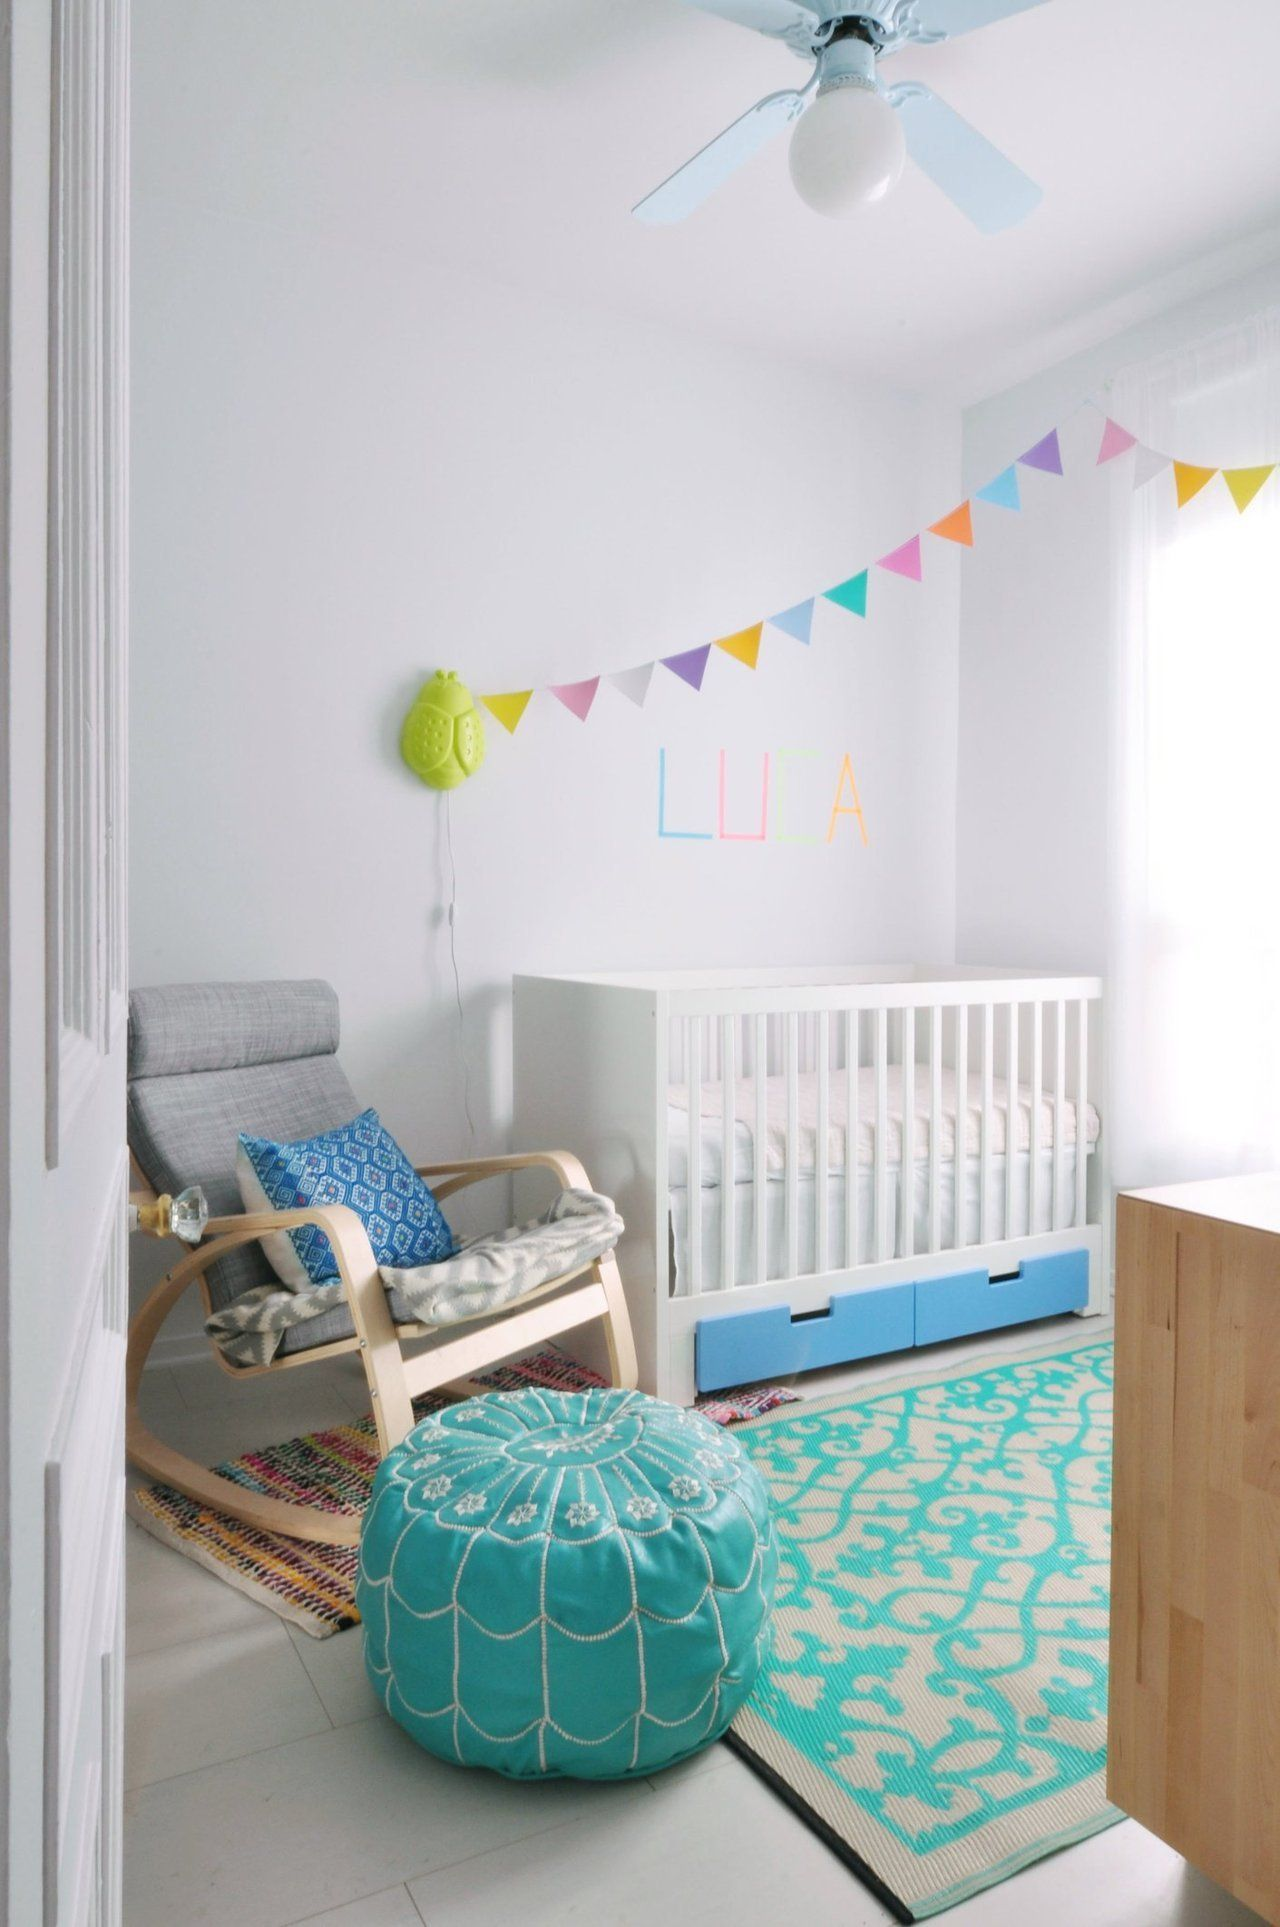 Julia bruno s colorful and airy home kiddies rooms for Kinderzimmer einrichtung ikea